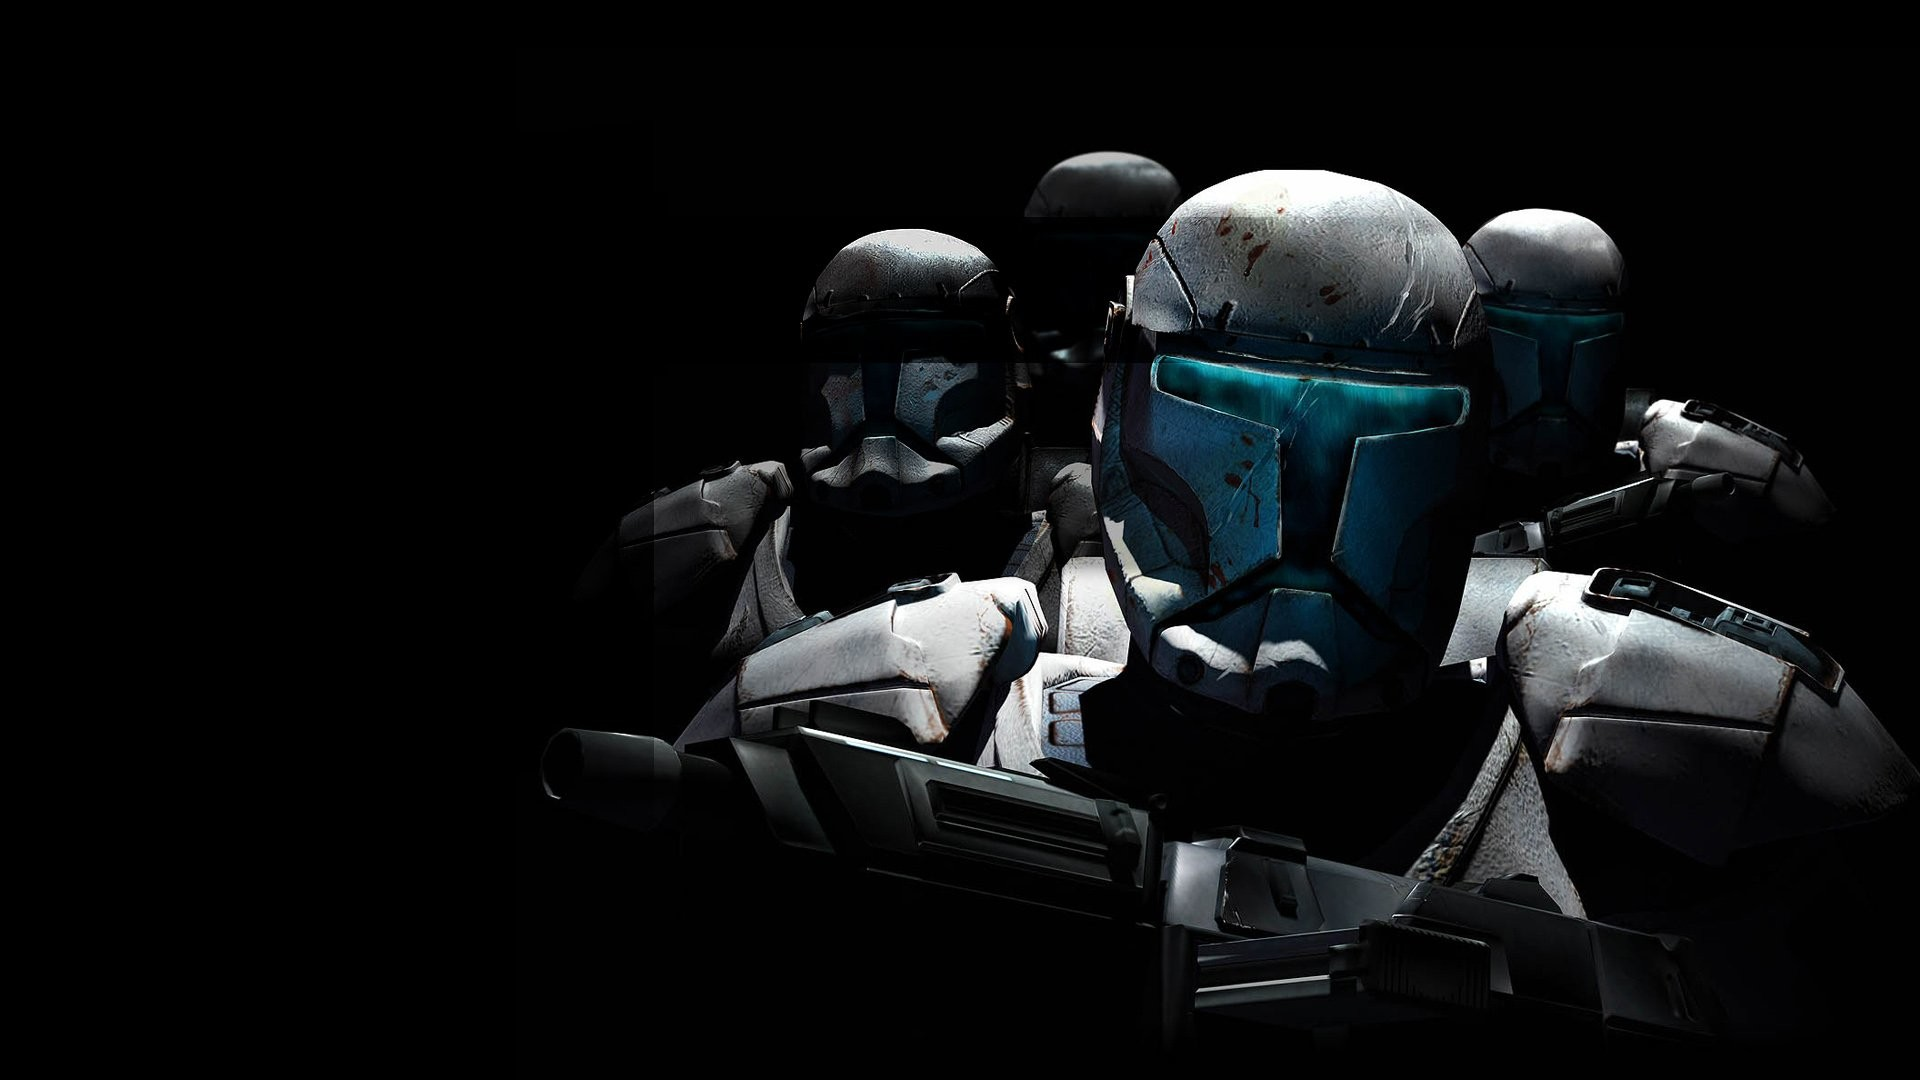 Star Wars Trooper Wallpaper 68+ images